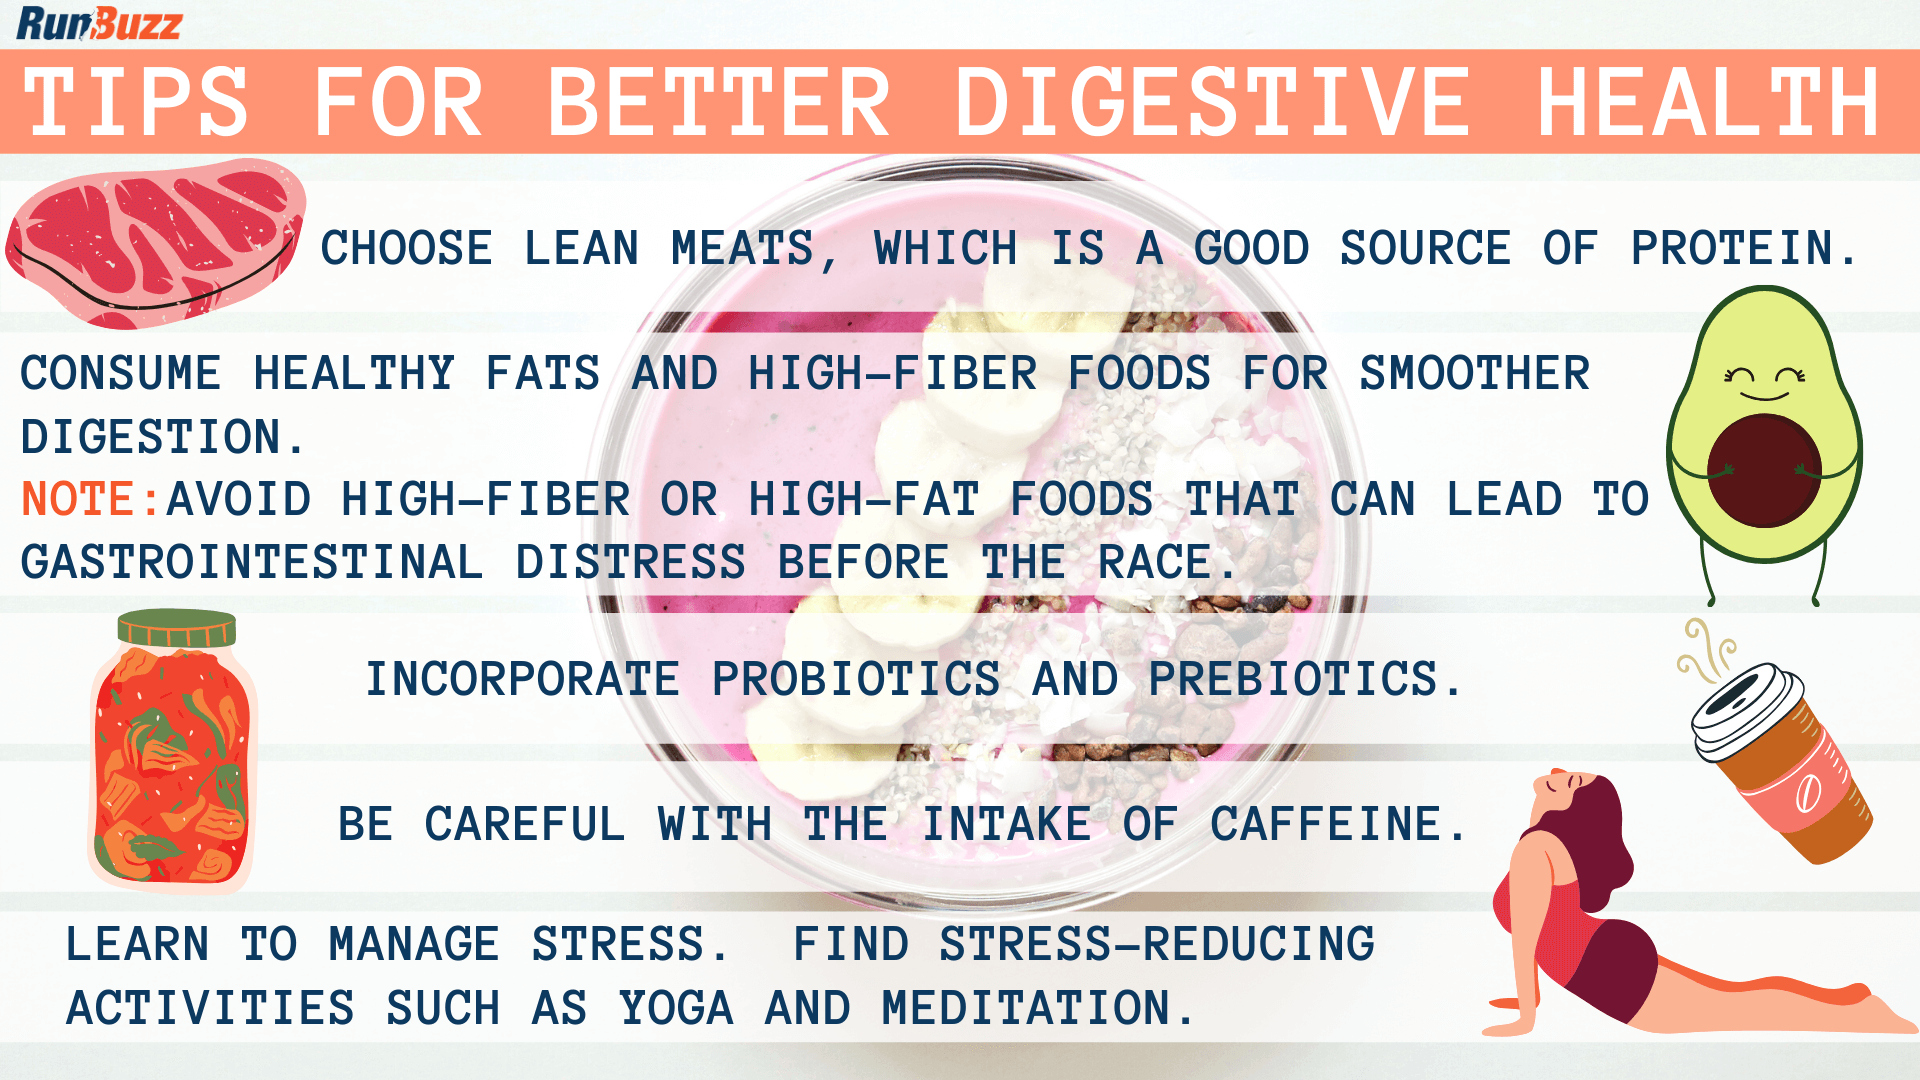 Tips-for-Better-Digestive-Health